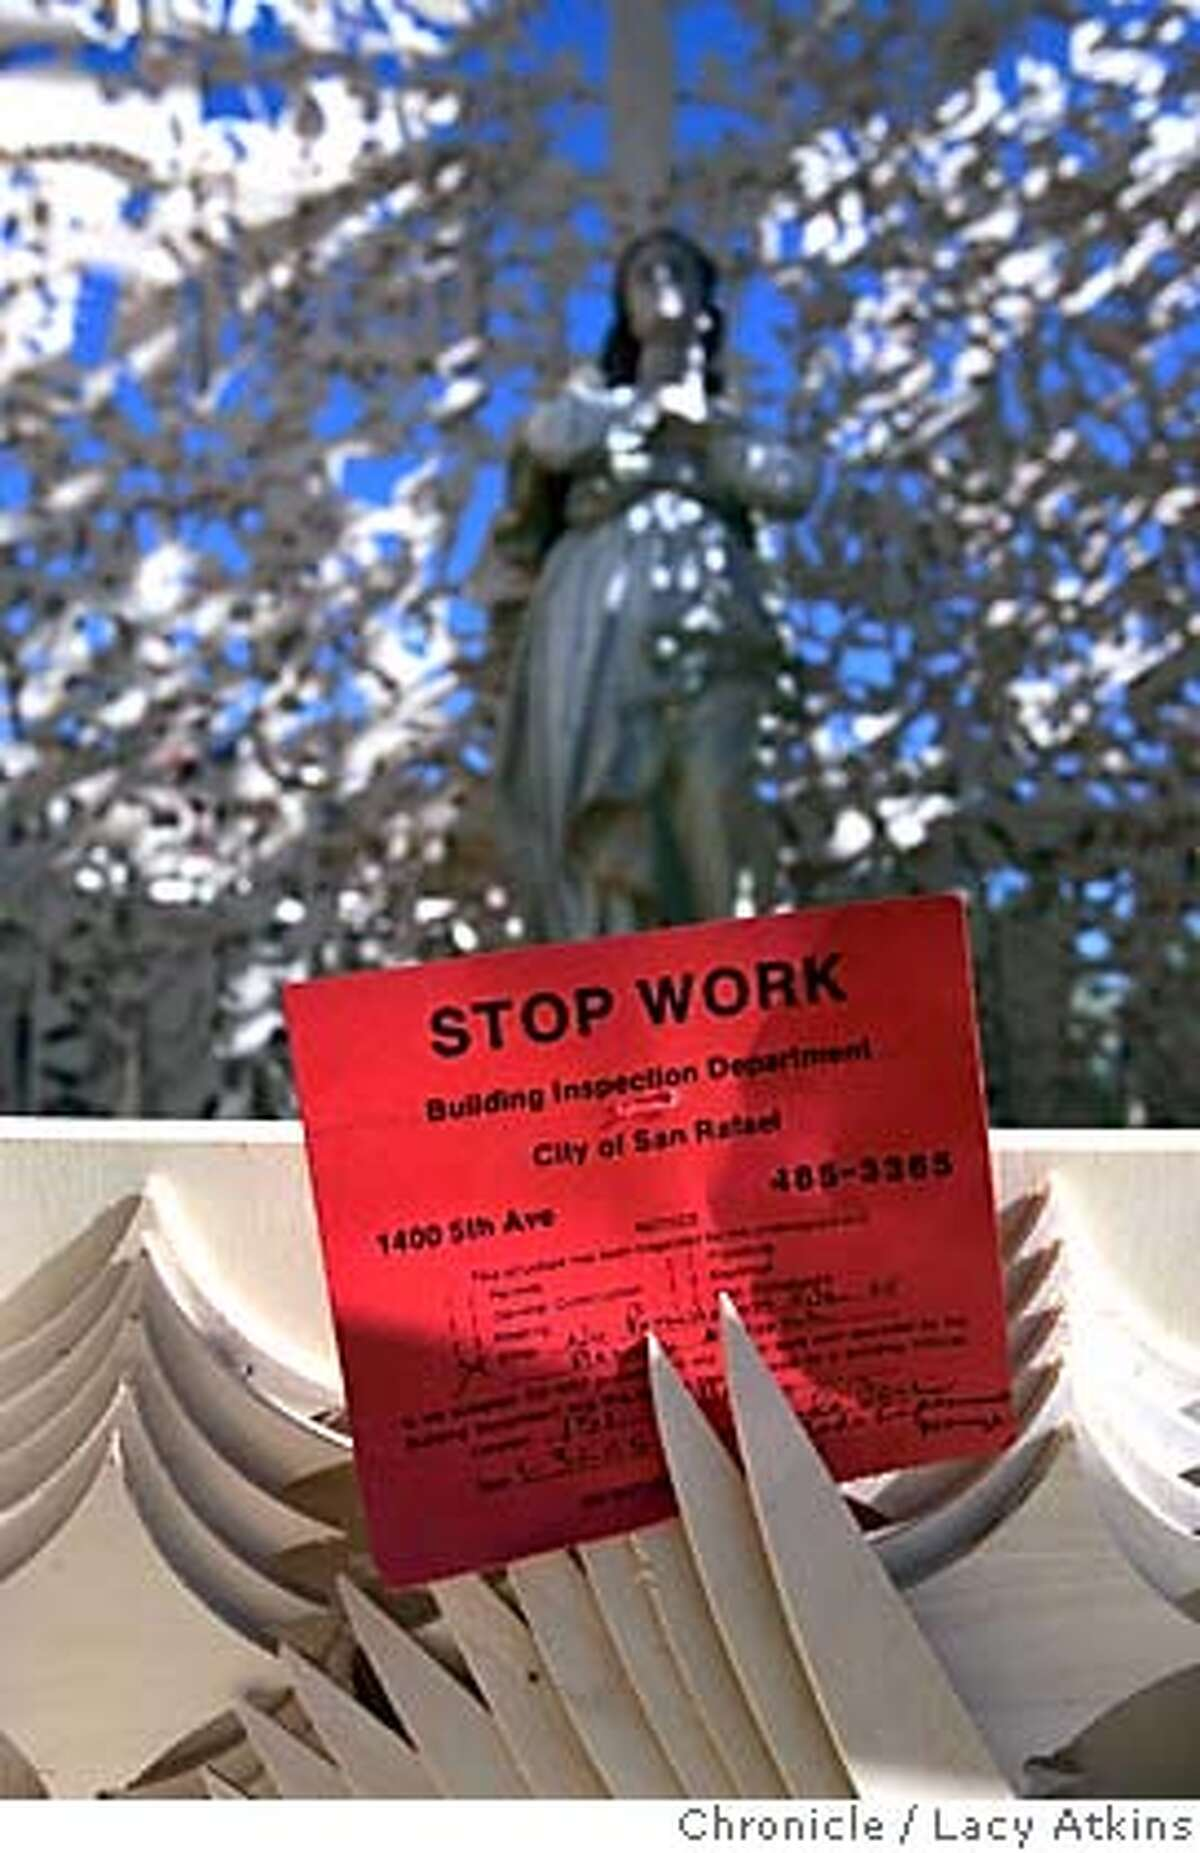 Stop Work was demained by the San Rafael Building Department of David Best's Chapel built for the day laborers in the Canel District, Tuesday Feb. 1, 2005. Petaluma artist David Best, well-known for his Burning Man temples, was commissioned to build a project by the San Rafael Arts Council. He started to build a Chapel of the Laborers for the day laborers in the Canal district and was about two-thirds finished when it got red-tagged by the city yesterday for not being up to building code LACY ATKINS/SAN FRANCISCO CHRONICLE